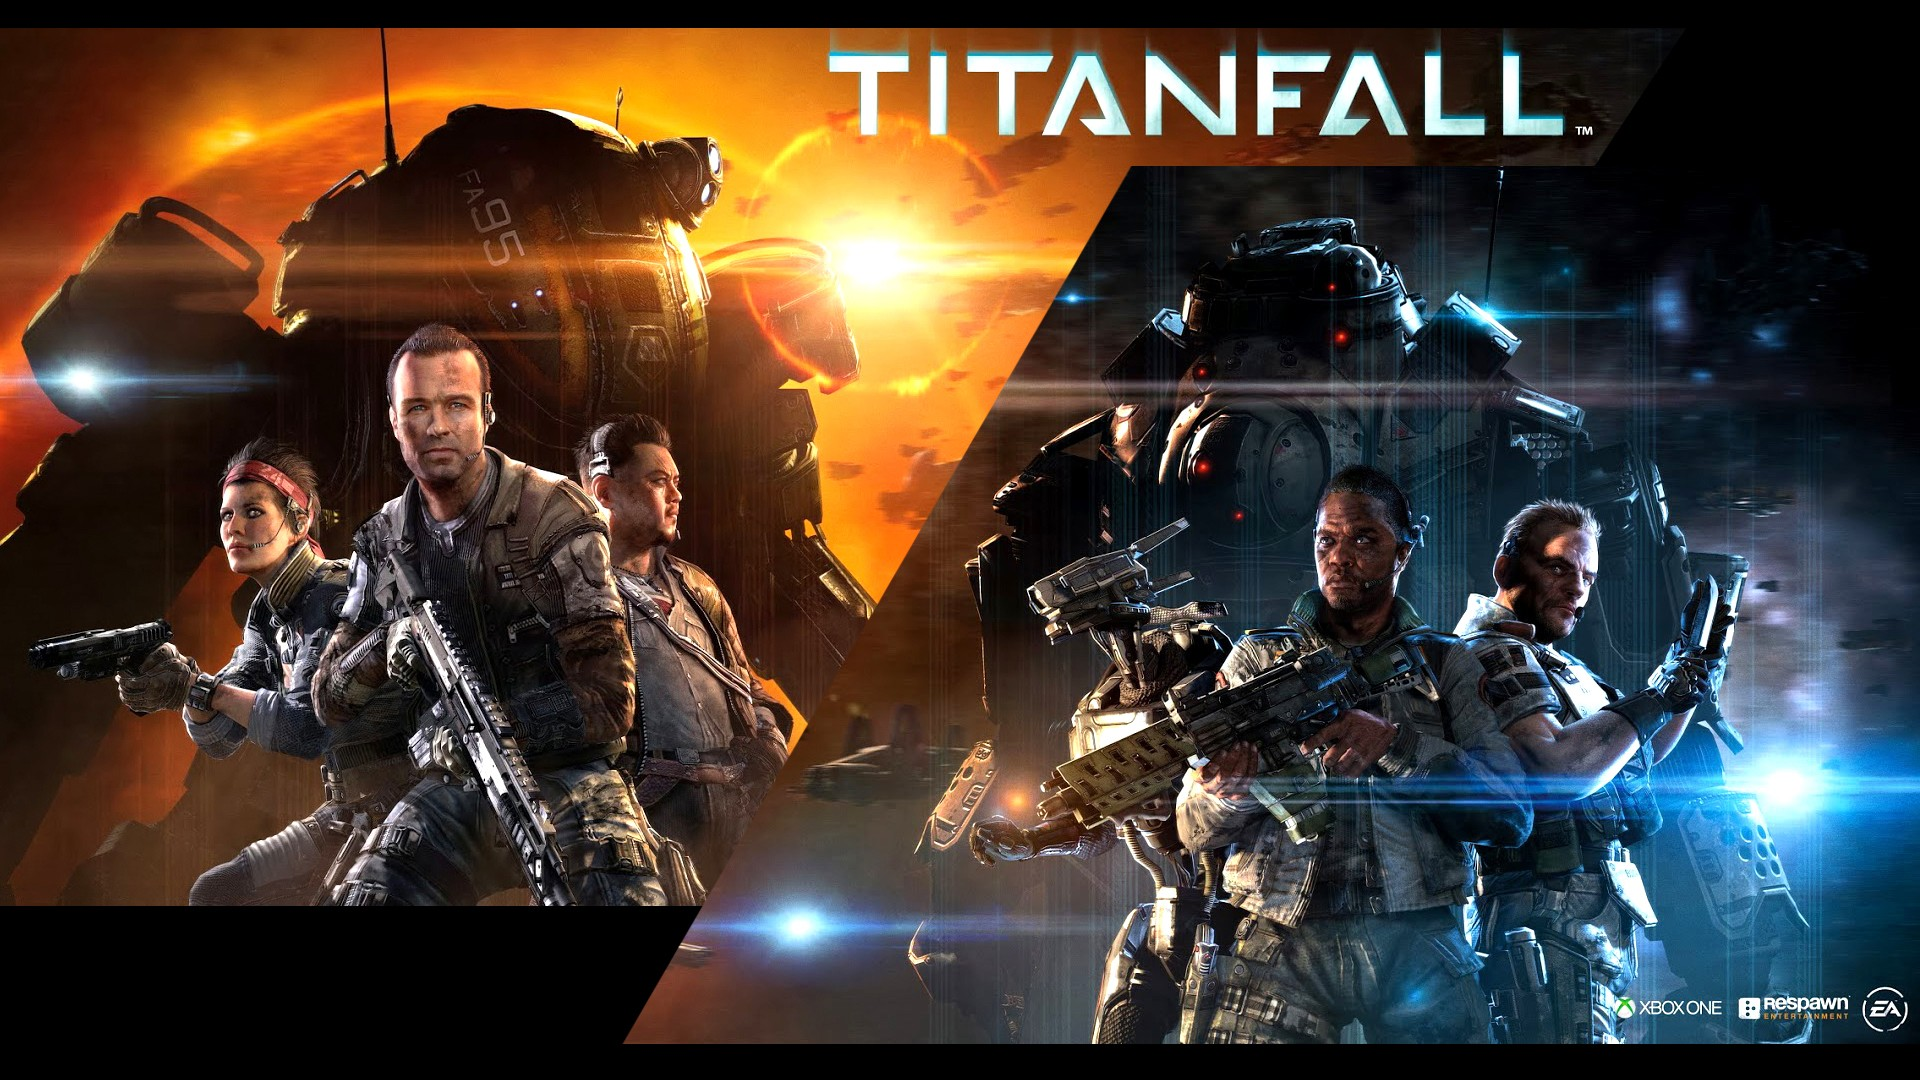 HD Wallpapers Titanfall Poster